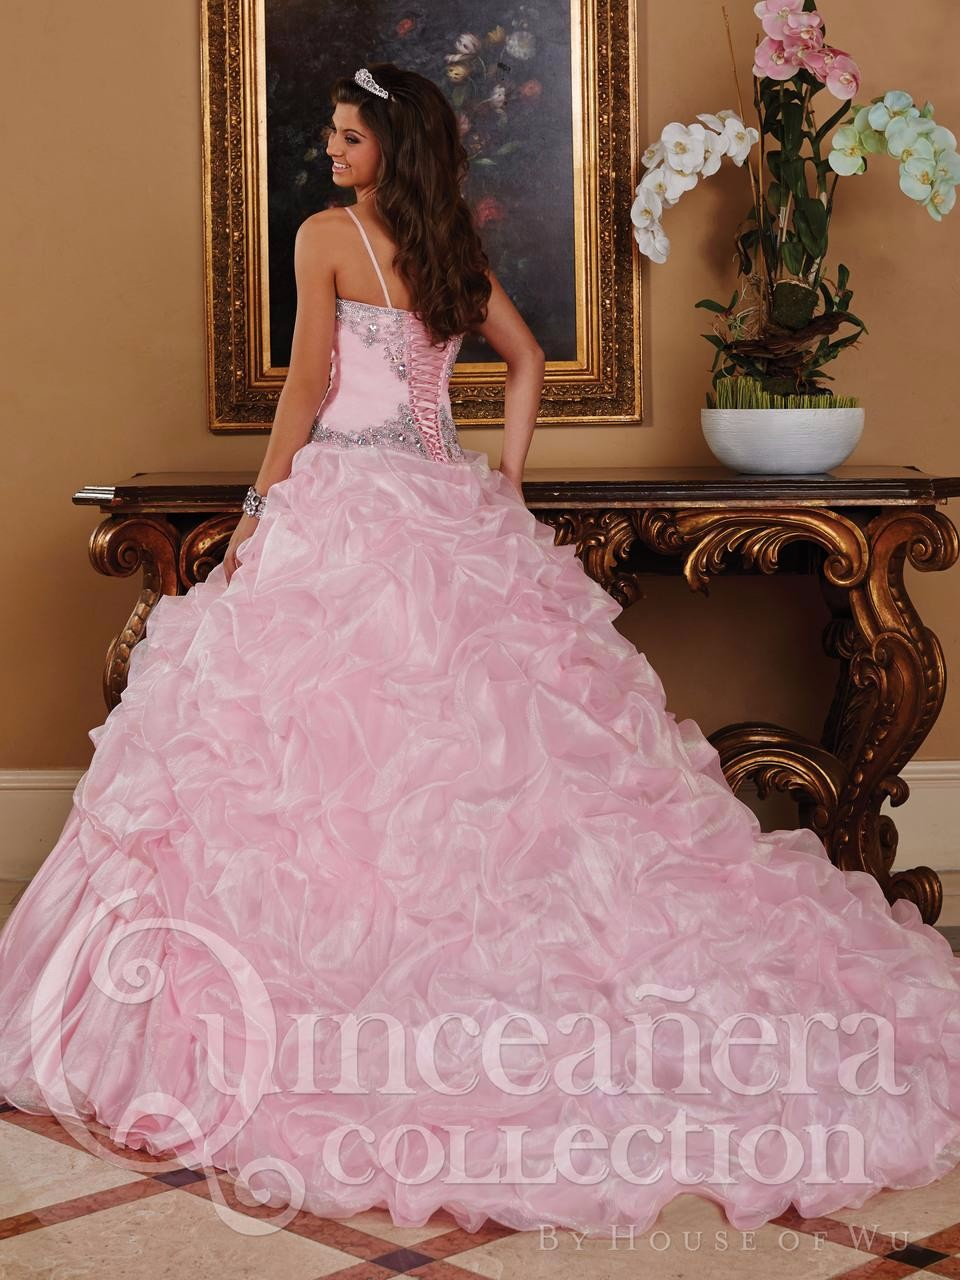 New-Arrival-Pink-2016-Quinceanera-Dresses-Ball-Gowns-Fashionable-Crystal-Ruffle-Vestidos-De-Quinceanera-Sweet-16 (2)